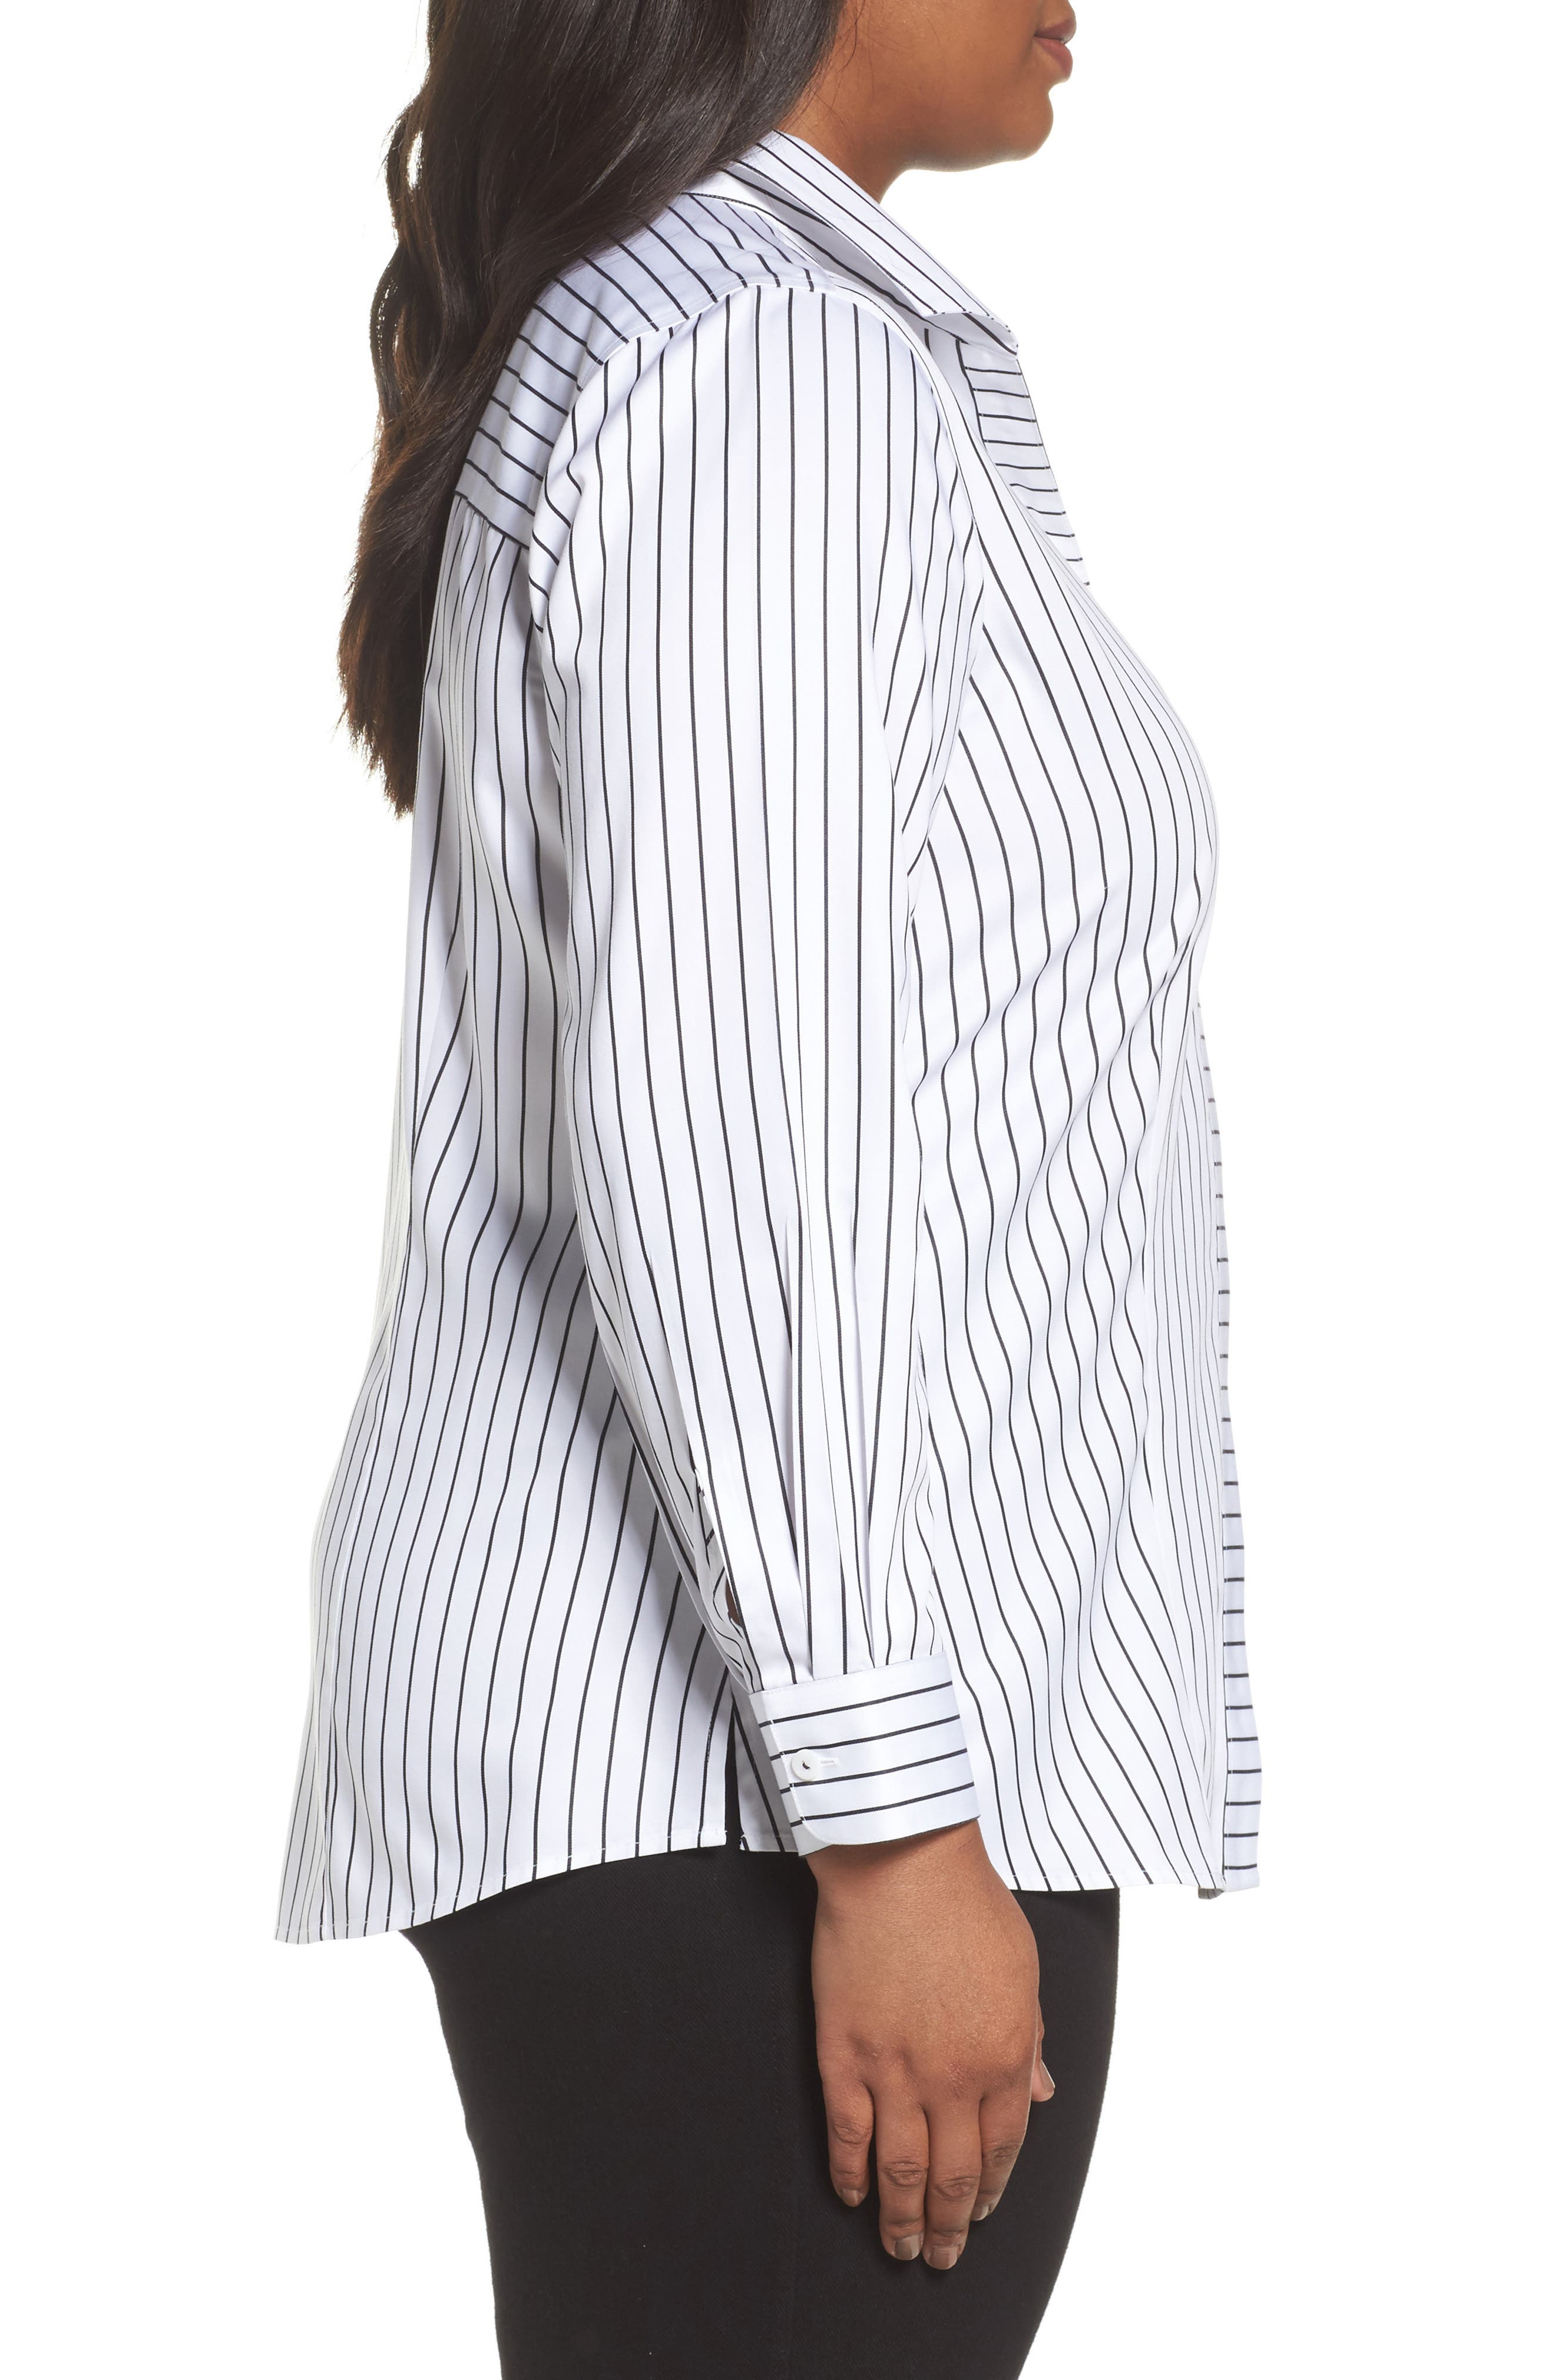 Annie Holiday Stripe Shirt,                             Alternate thumbnail 3, color,                             100